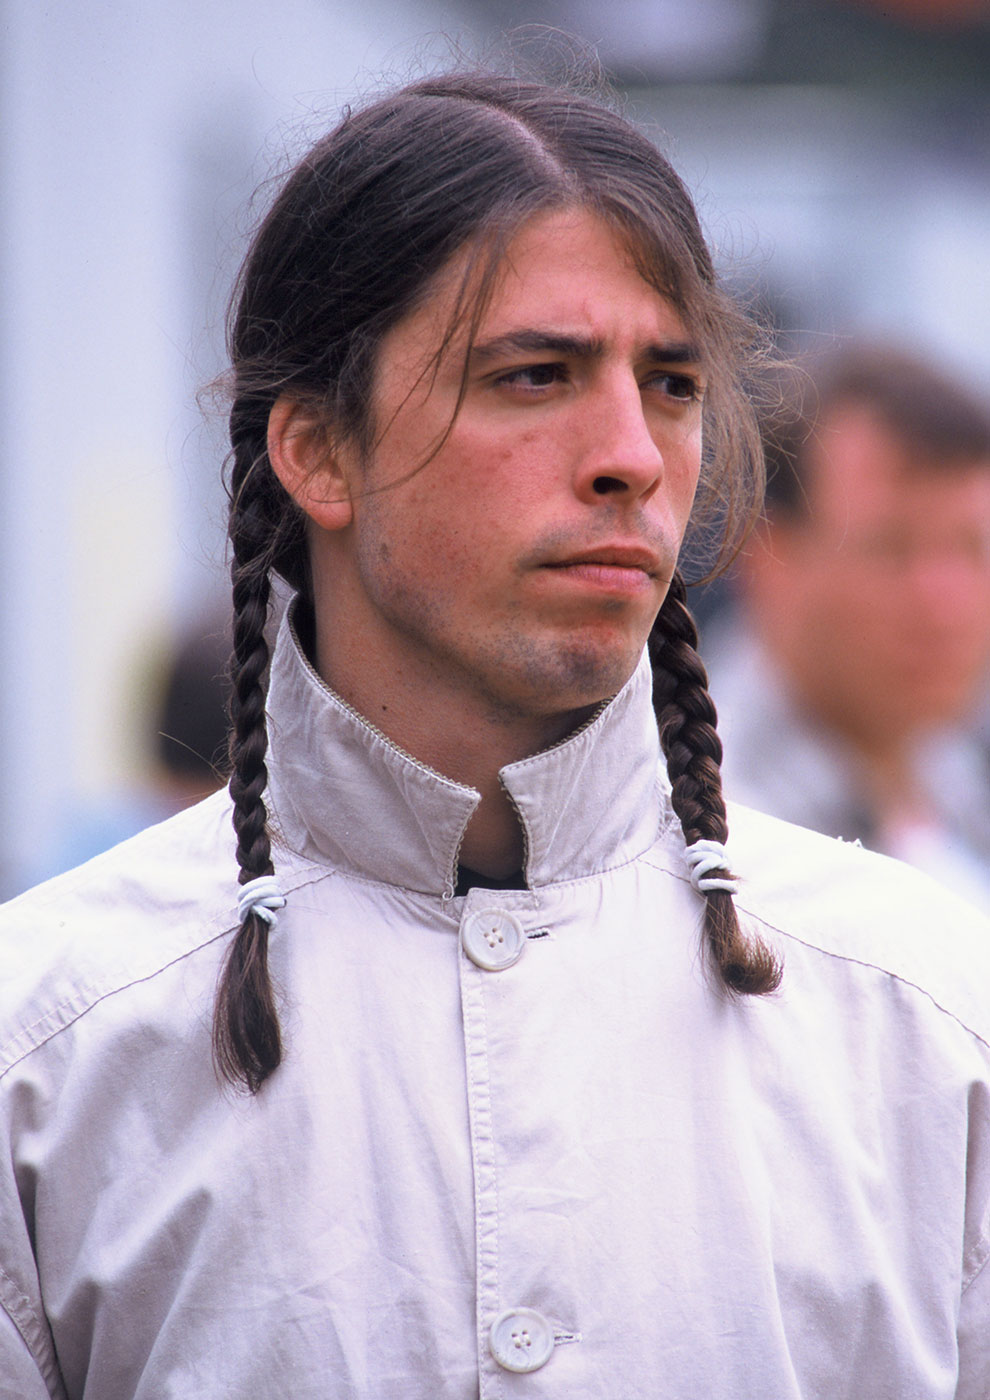 Dave Grohl of the Foo Fighters backstage at The Tibetan Freedom Concert 1996 held at the Polo Fields in Golden Gate Park in San Francisco, California on June 16, 1995.